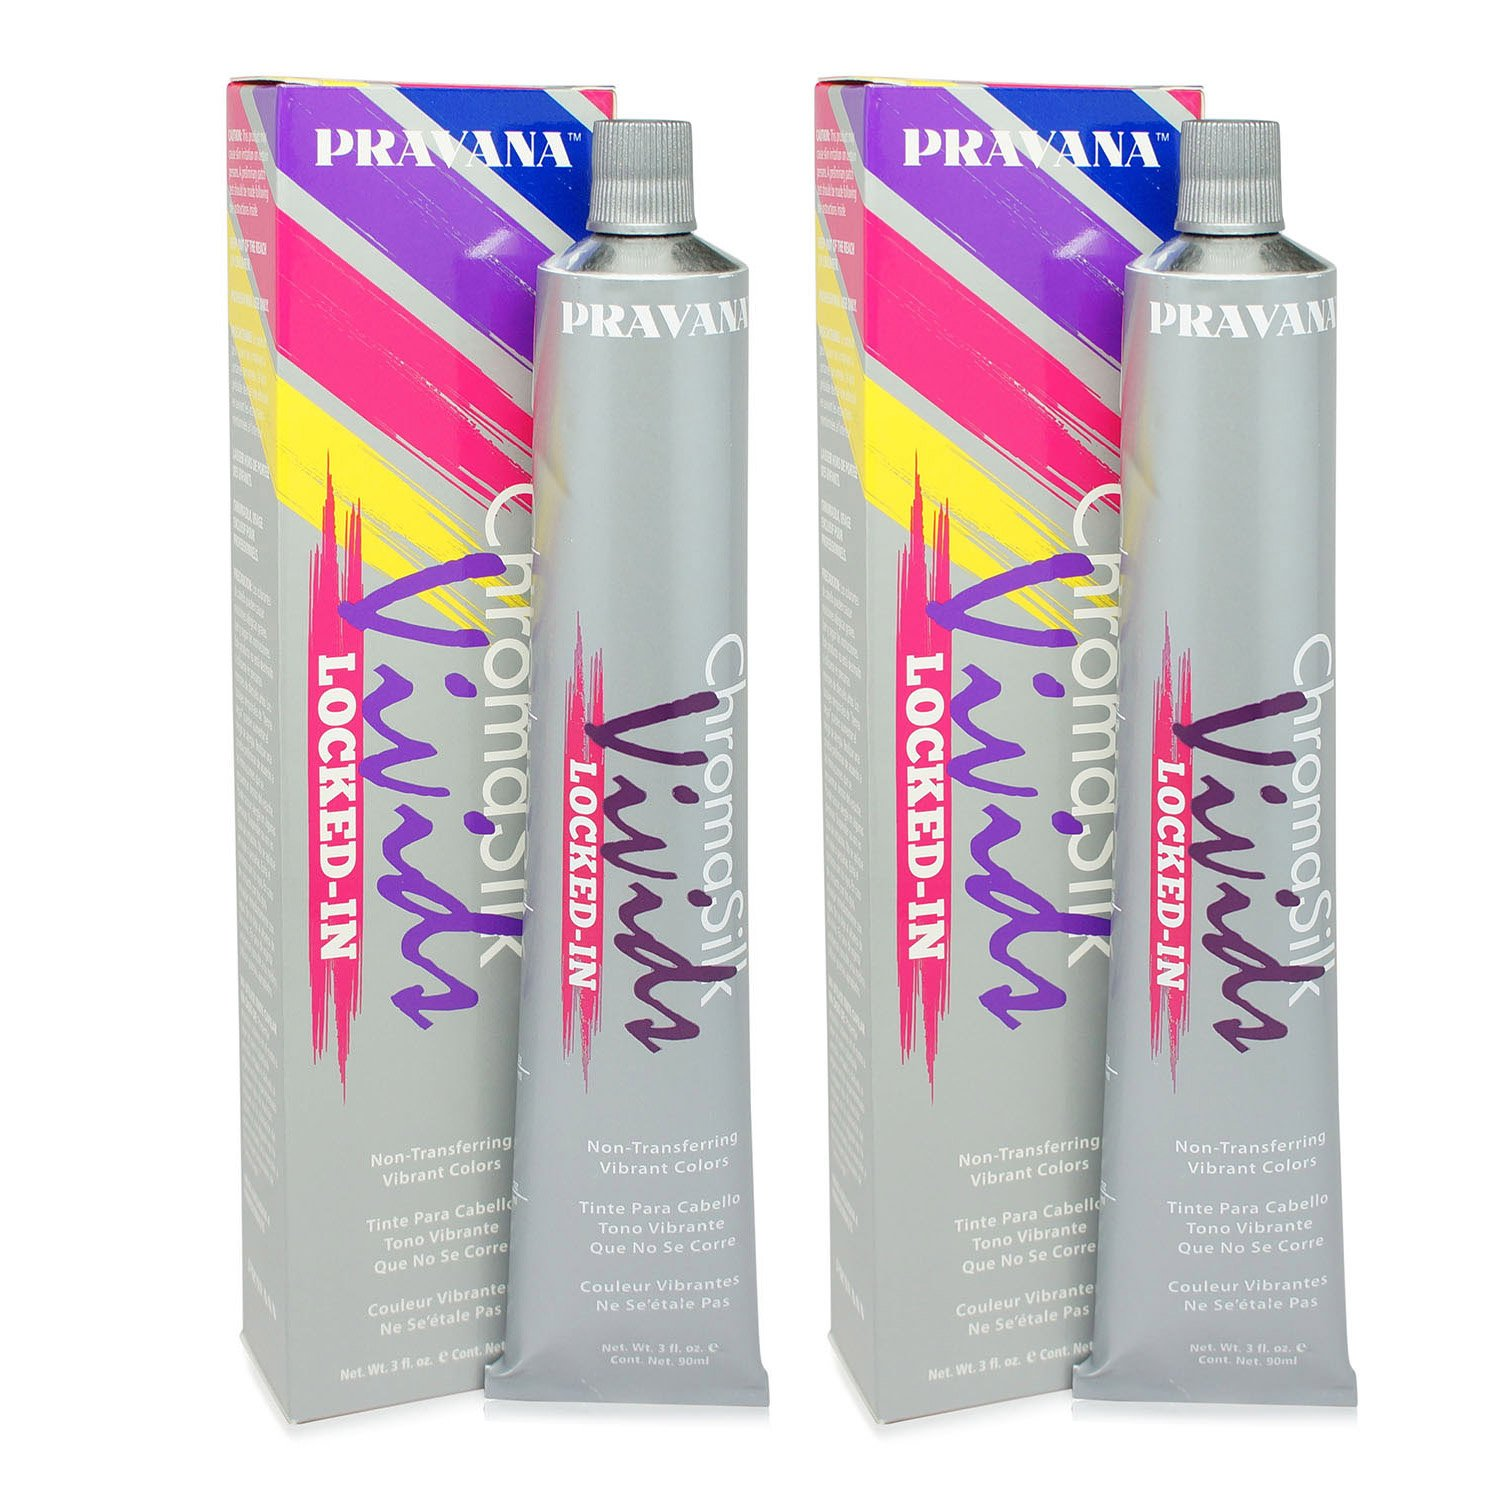 Pravana ChromaSilk Vivids (Locked in Teal), 3 Fl 0z - 2 Pack